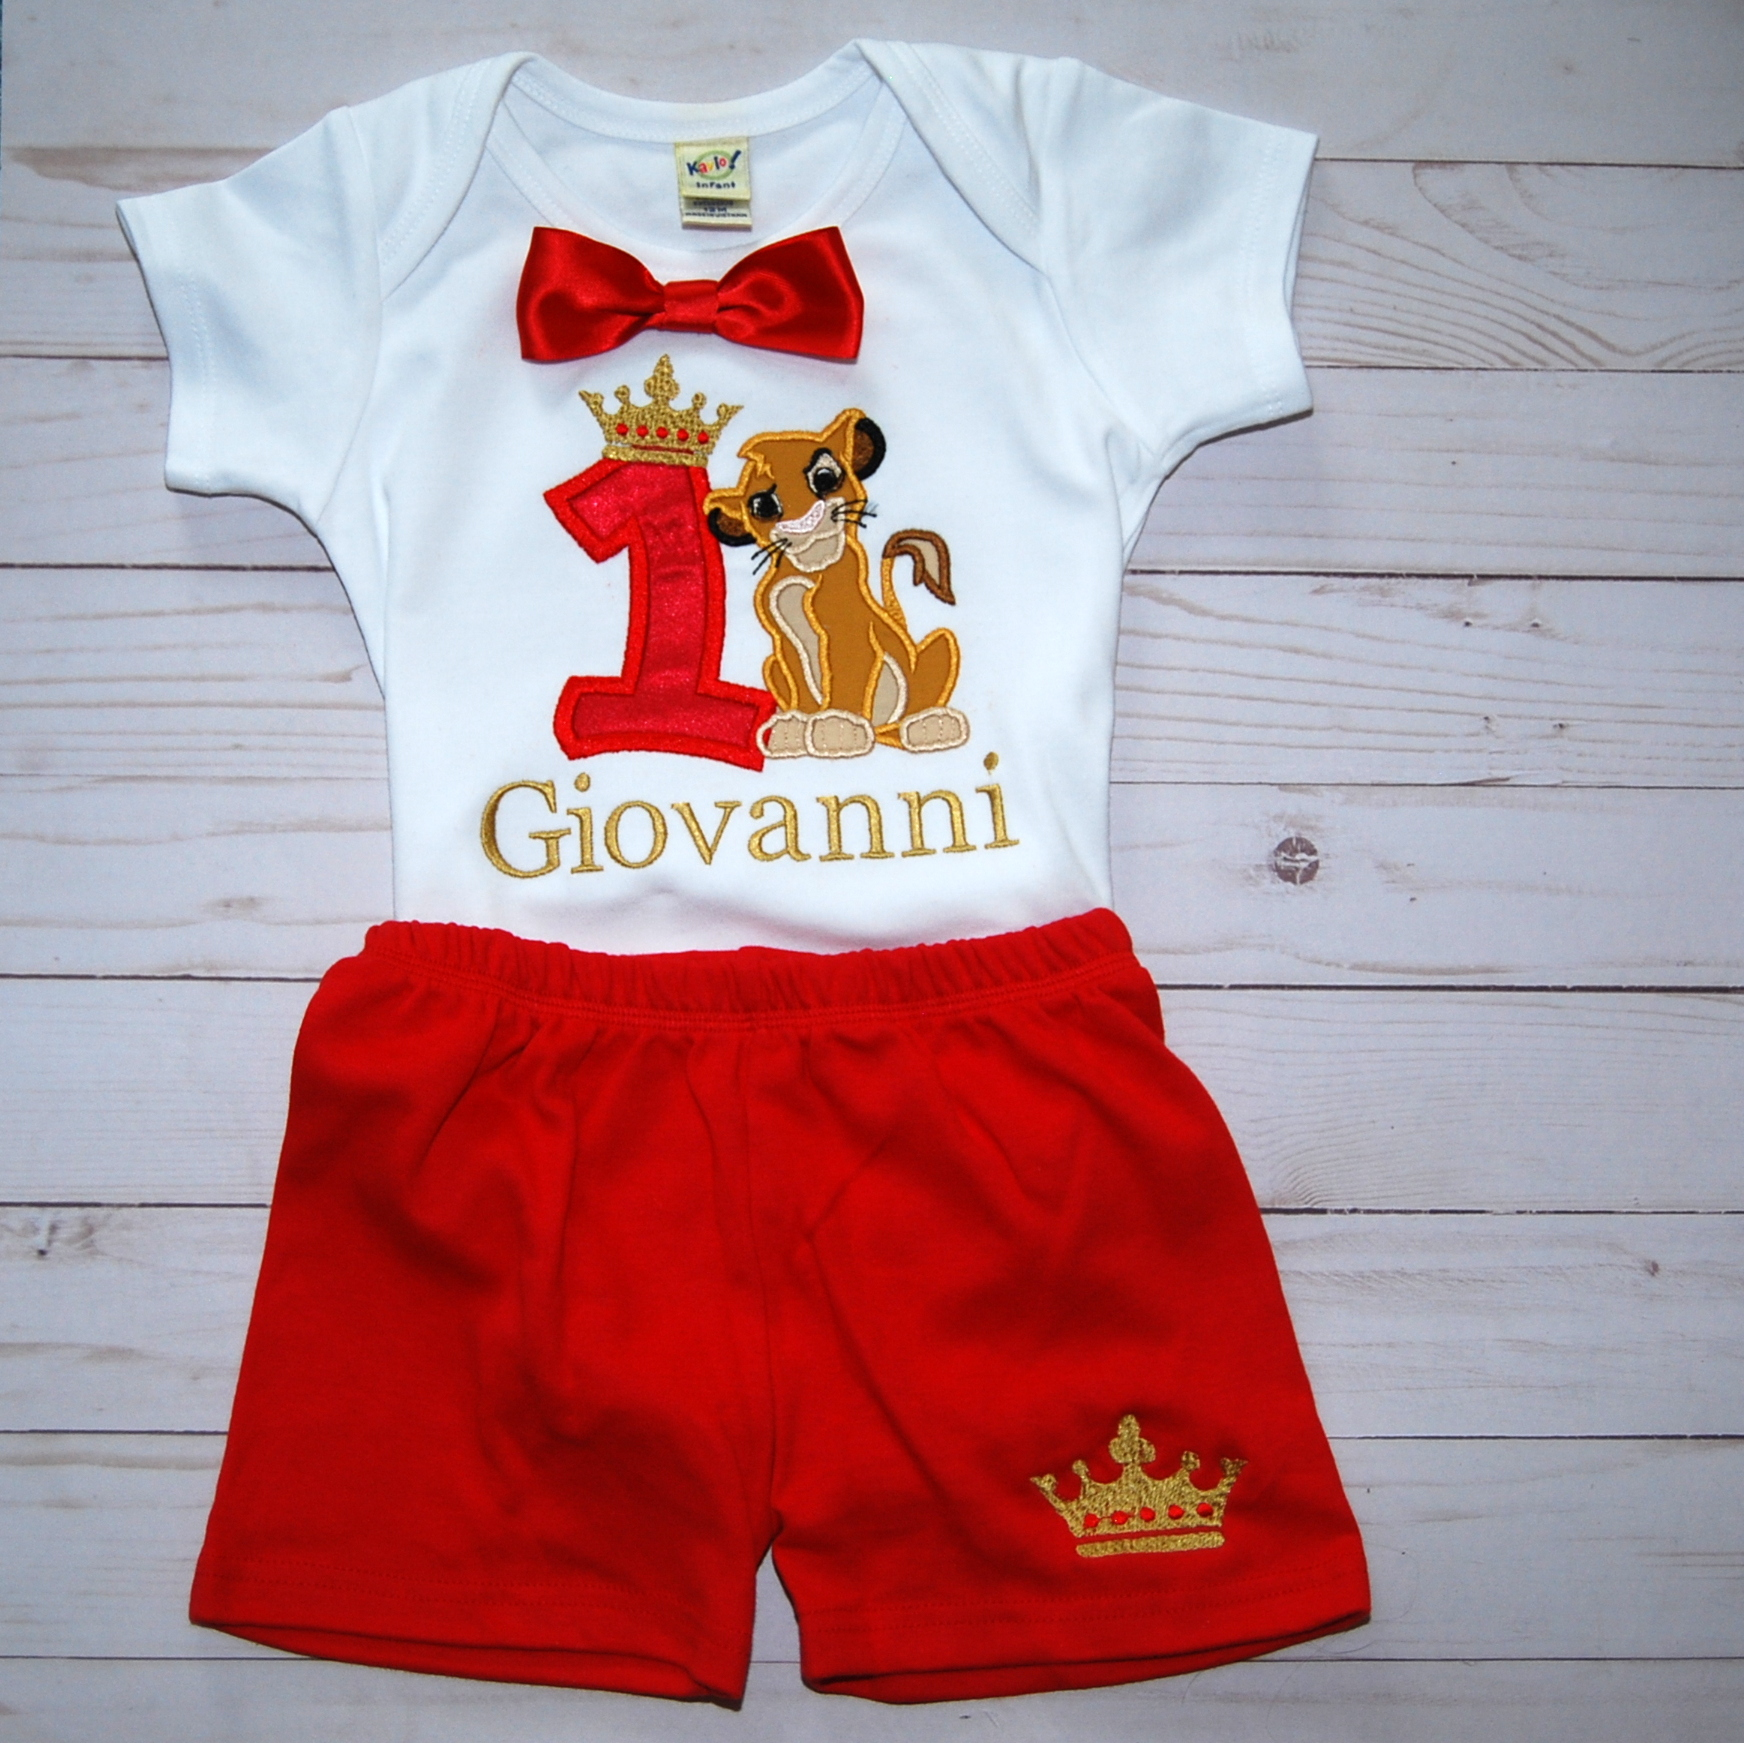 1st Birthday Outfit Boy, Lion King Birthday